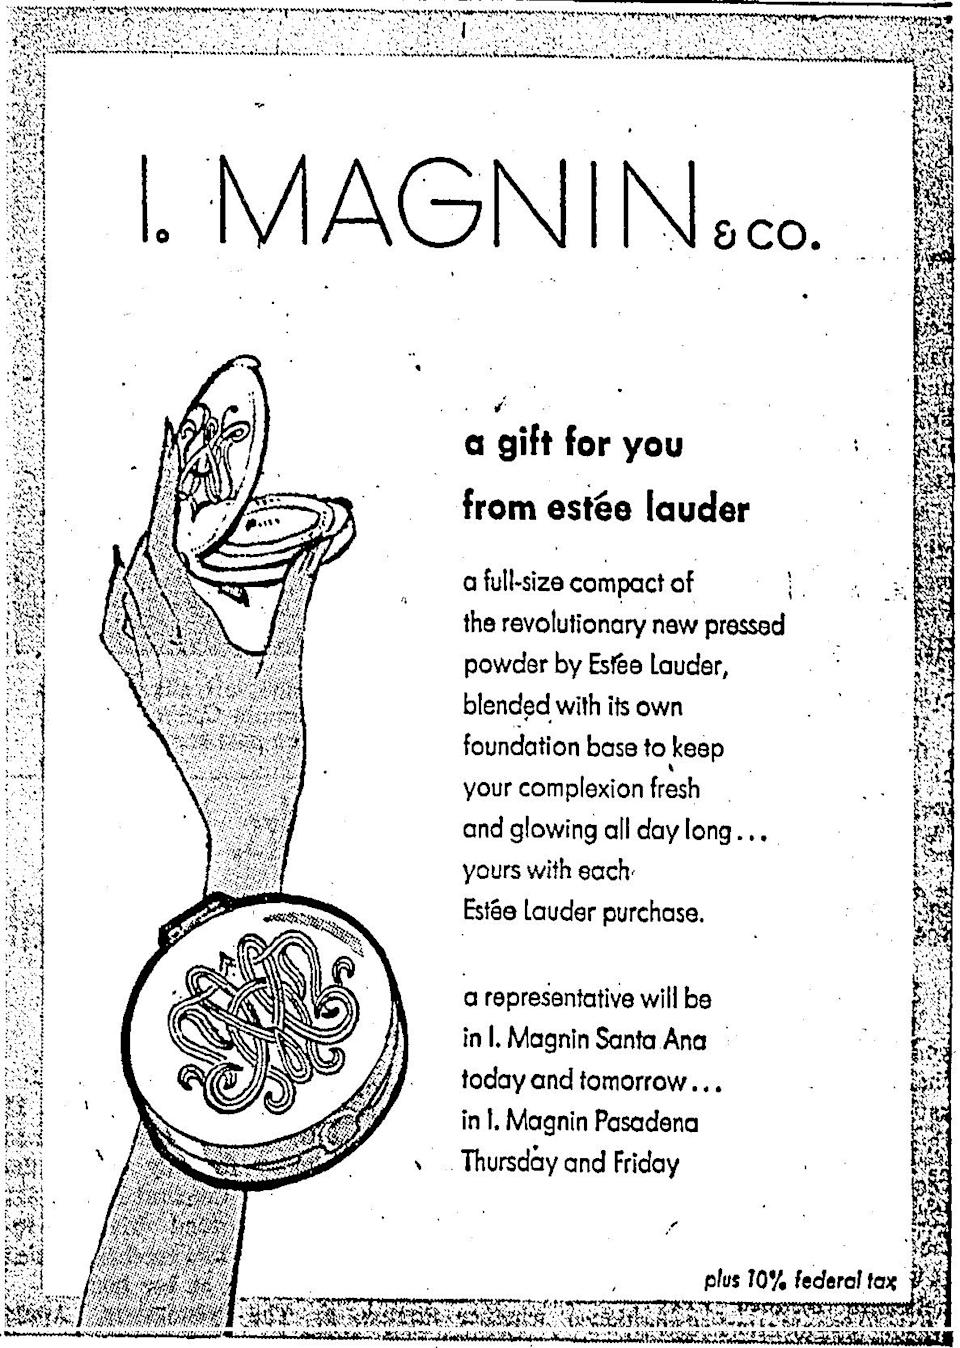 <p>A department store called I. Magnin paid for a portion of this ad to steer customers to their Santa Ana and Pasadena, California locations for free compacts and a meet and greet with a brand representative. <i>(Photo: Estée Lauder)</i></p>